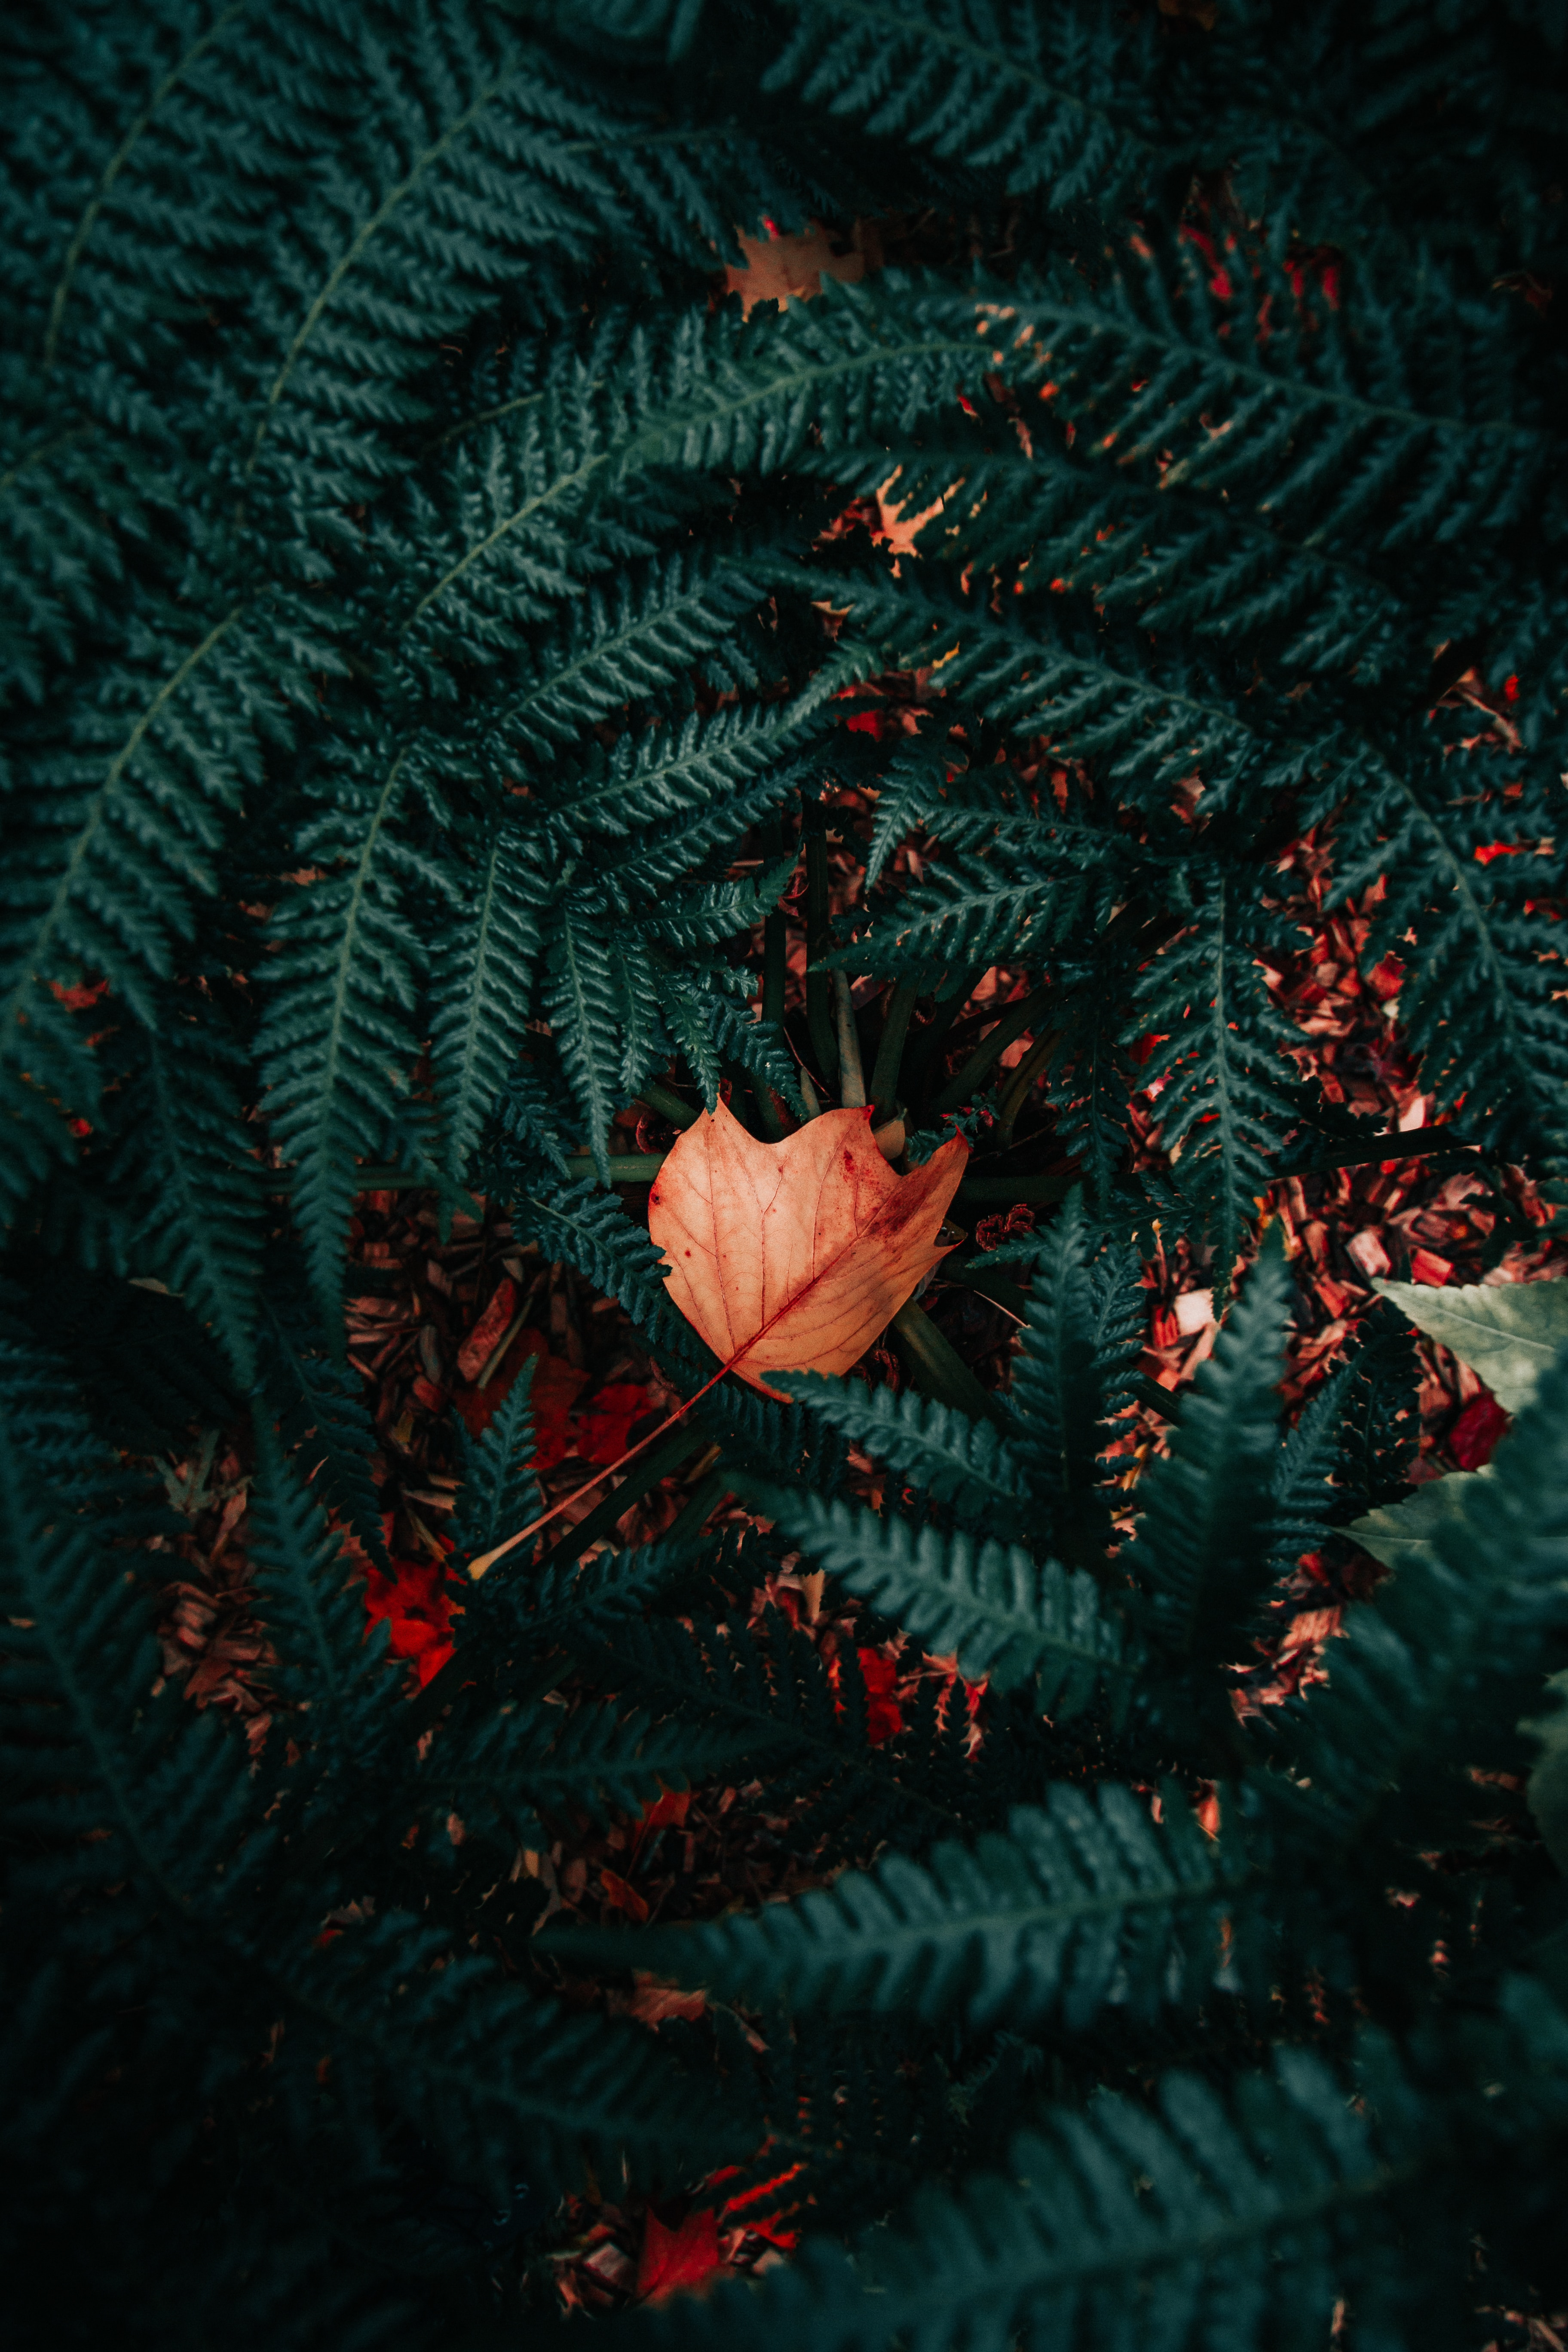 154343 download wallpaper Nature, Plant, Fern, Foliage, Dry screensavers and pictures for free